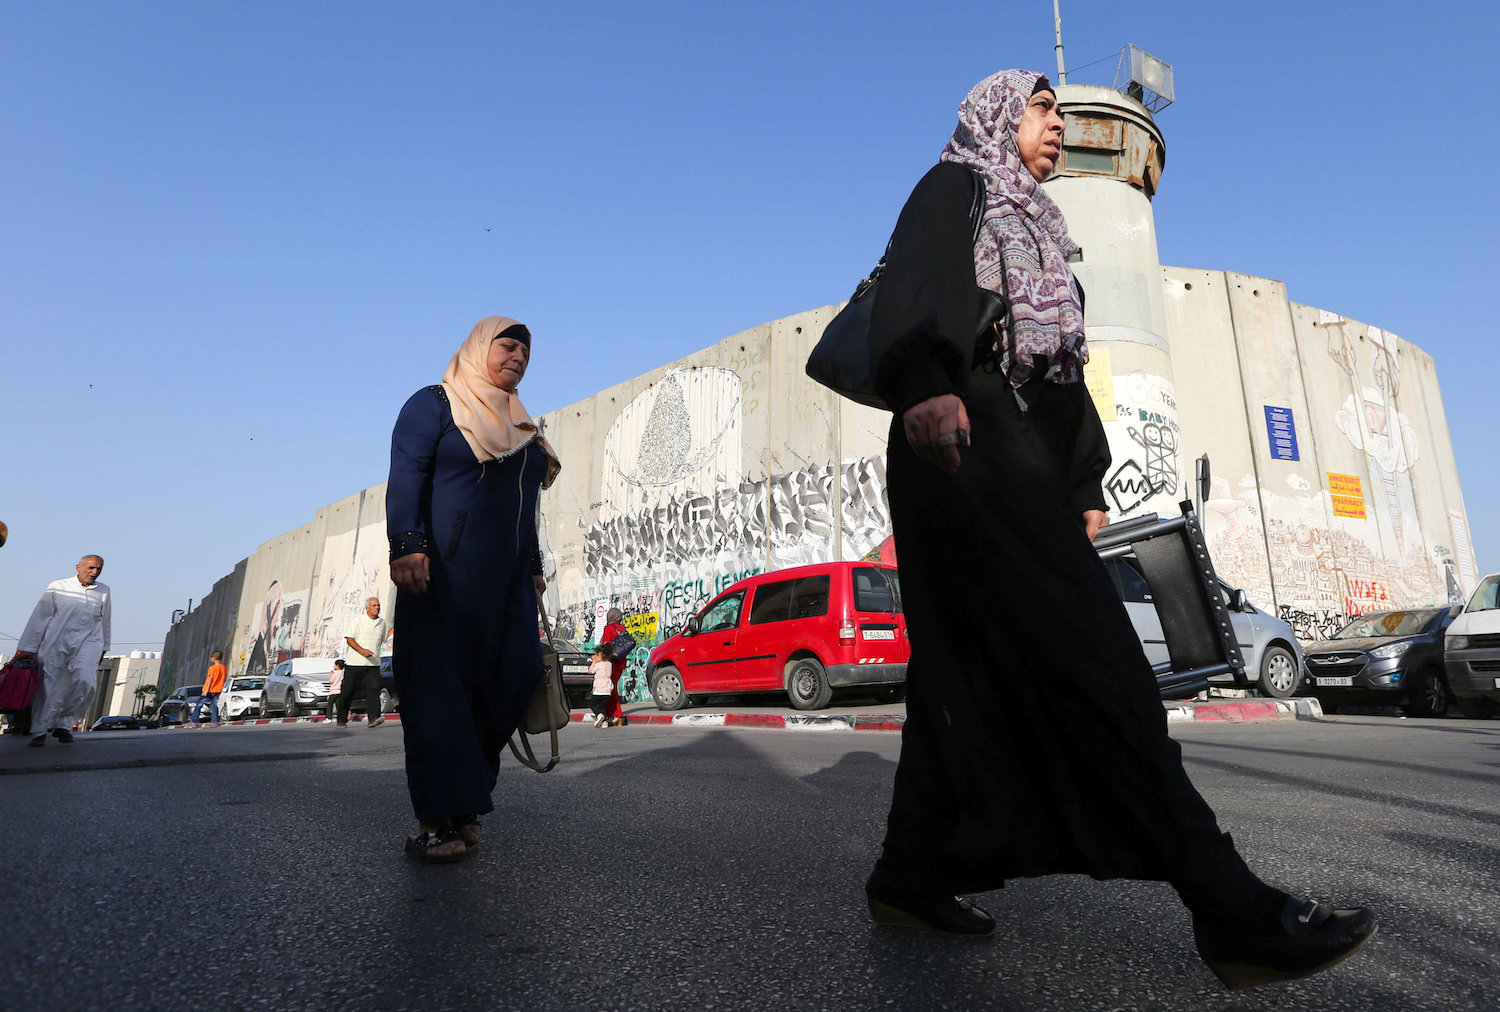 Palestinians cross through an Israeli checkpoint to attend the last Friday prayer of the holy fasting month of Ramadan in Jerusalem's Al-Aqsa Mosque, near the West Bank city of Bethlehem, May 31, 2019. (Wisam Hashlamoun/Flash90)